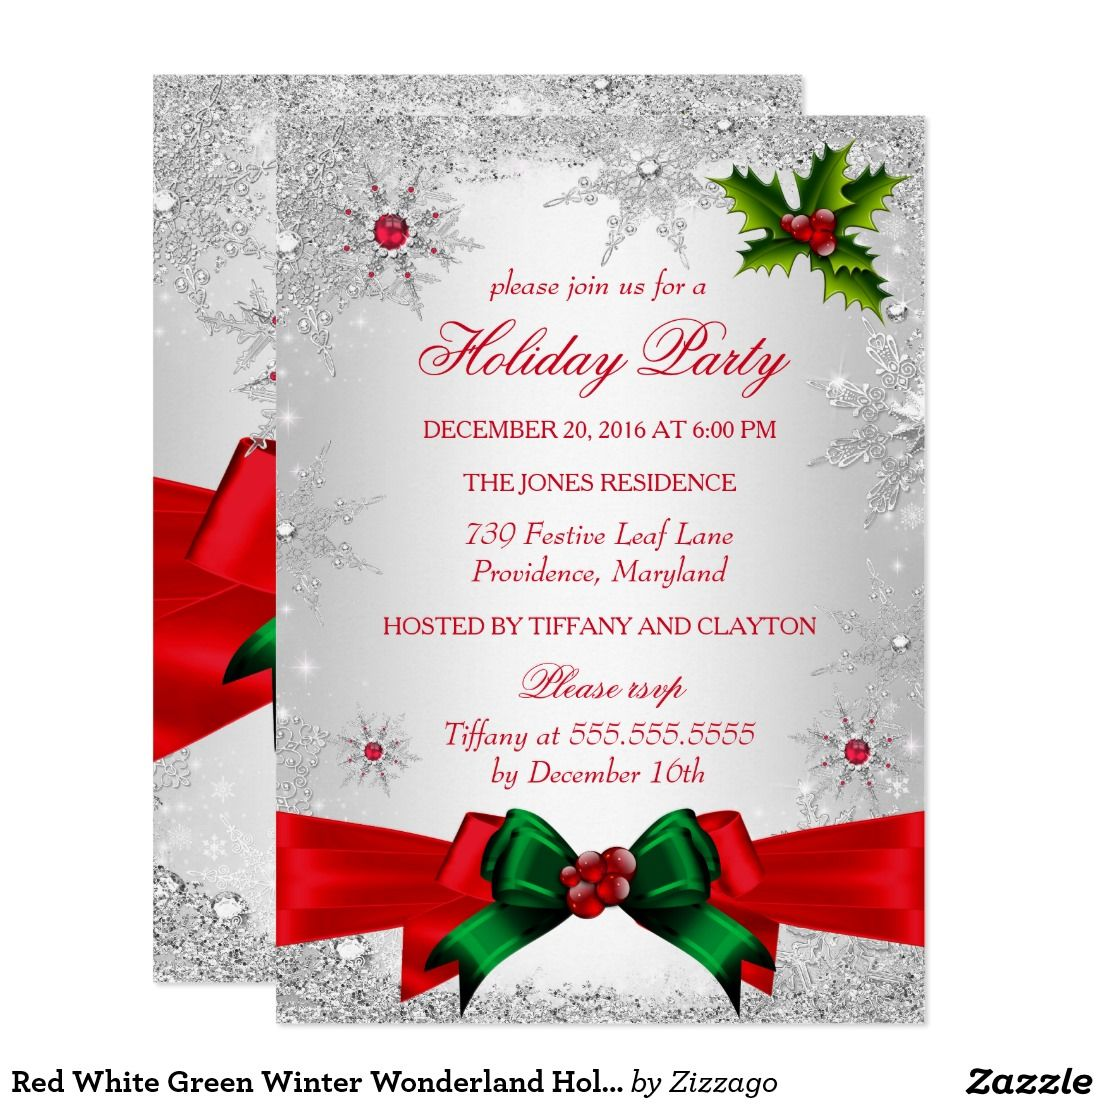 Red White Green Winter Wonderland Holiday Party Card   Christmas ...